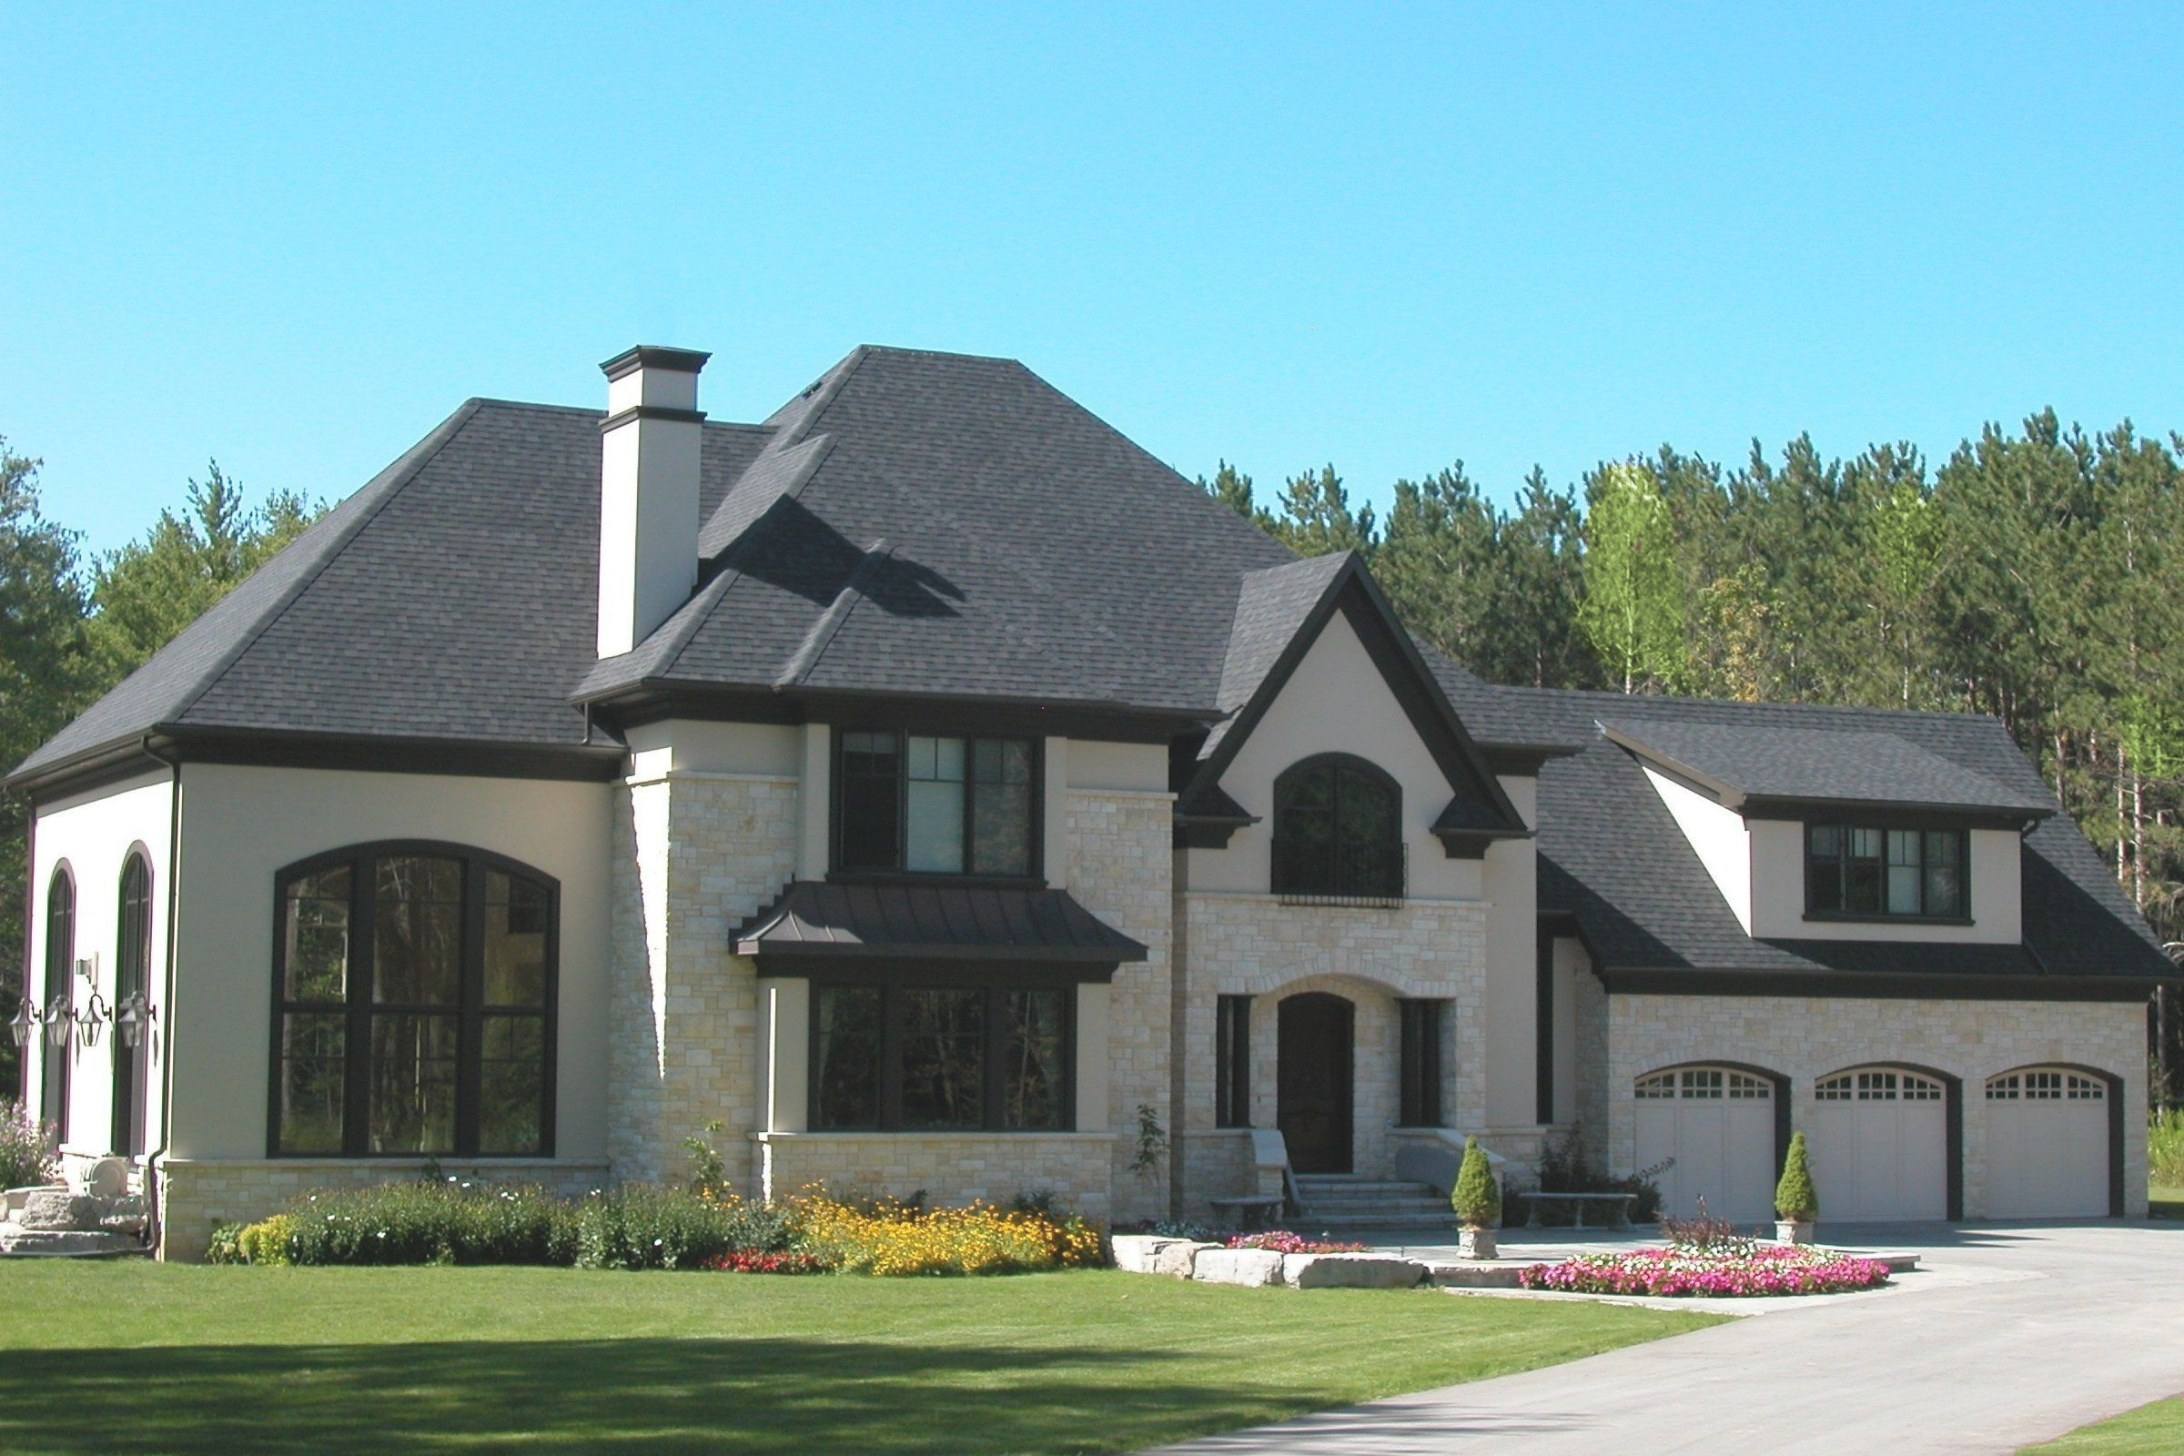 Portfolio | Stucco Homes, Exterior Brick, Brick Exterior House within Stucco And Stone Homes